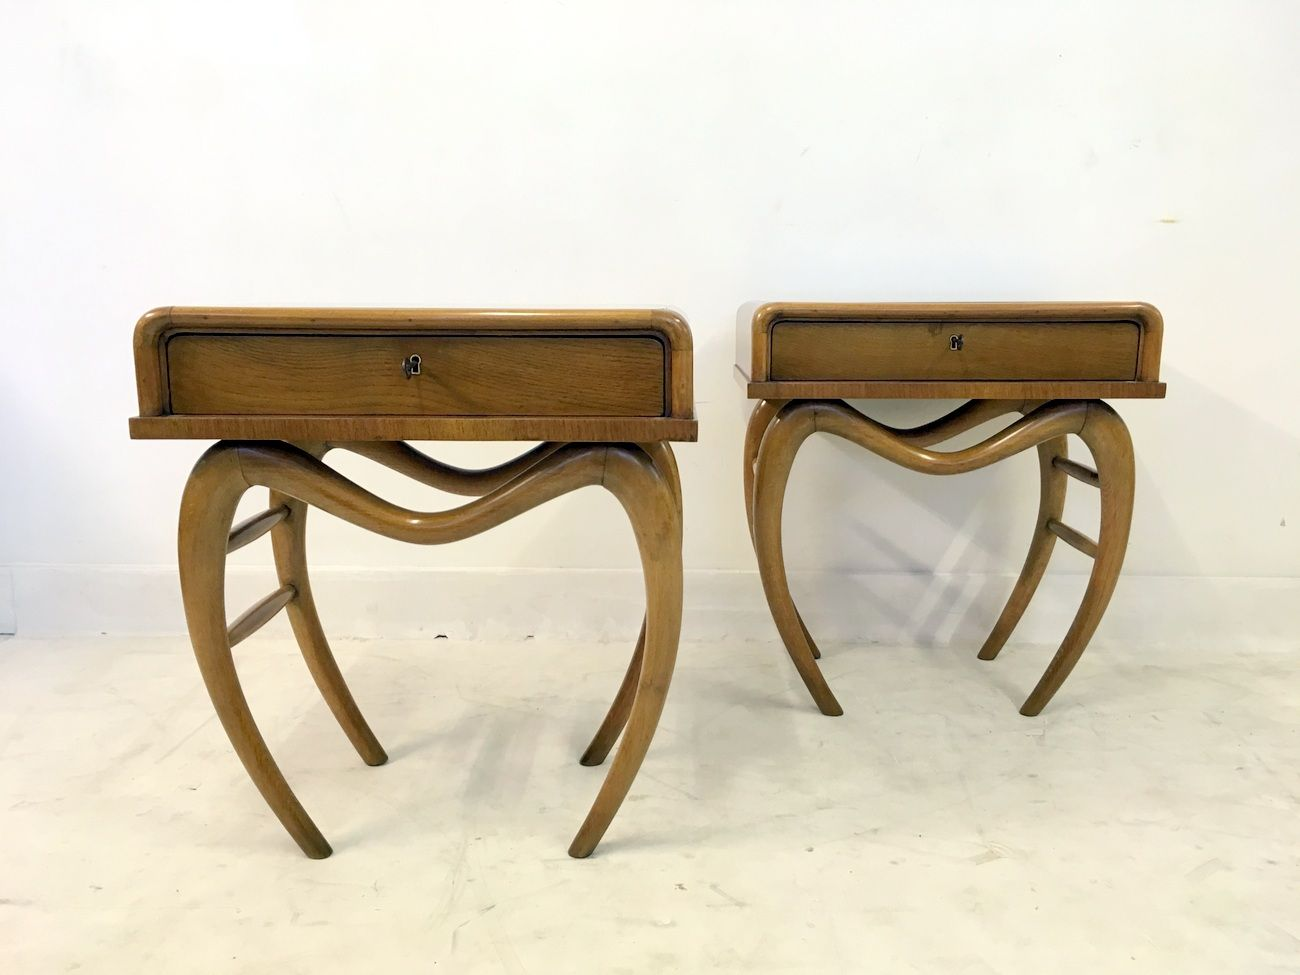 Vintage Italian Bedside Tables , Set of 2 for sale at Pamono